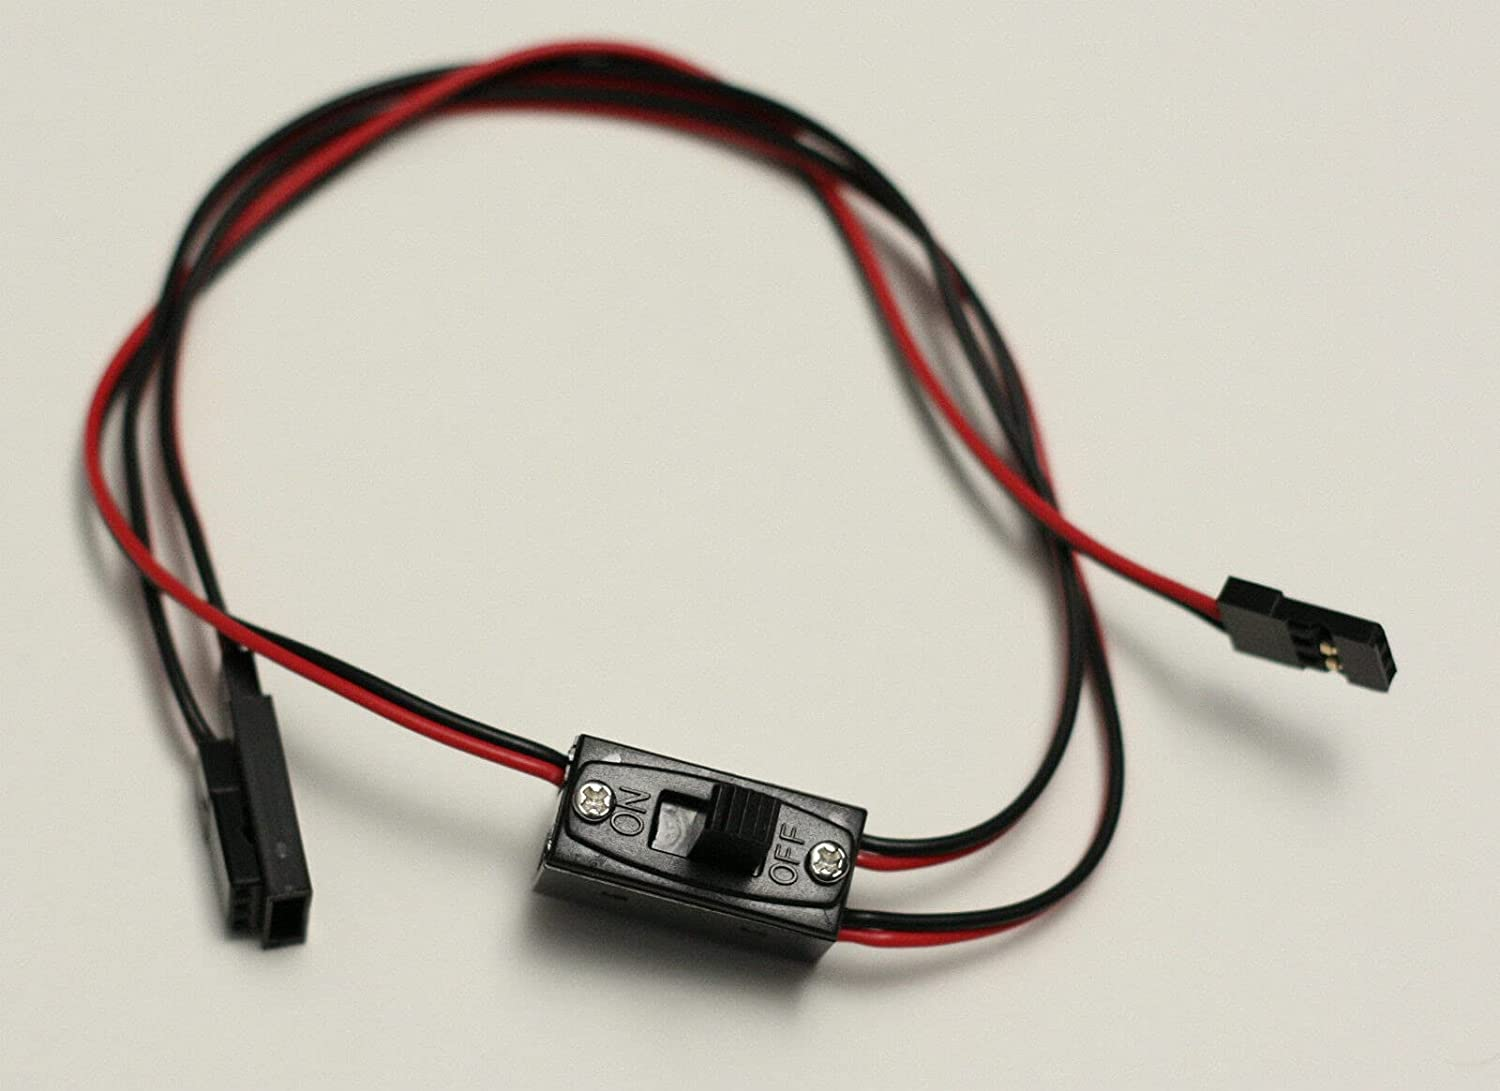 Amazing Standard Battery Switch for R low-pricing Lead Fits Spectrum C discount 3 JR